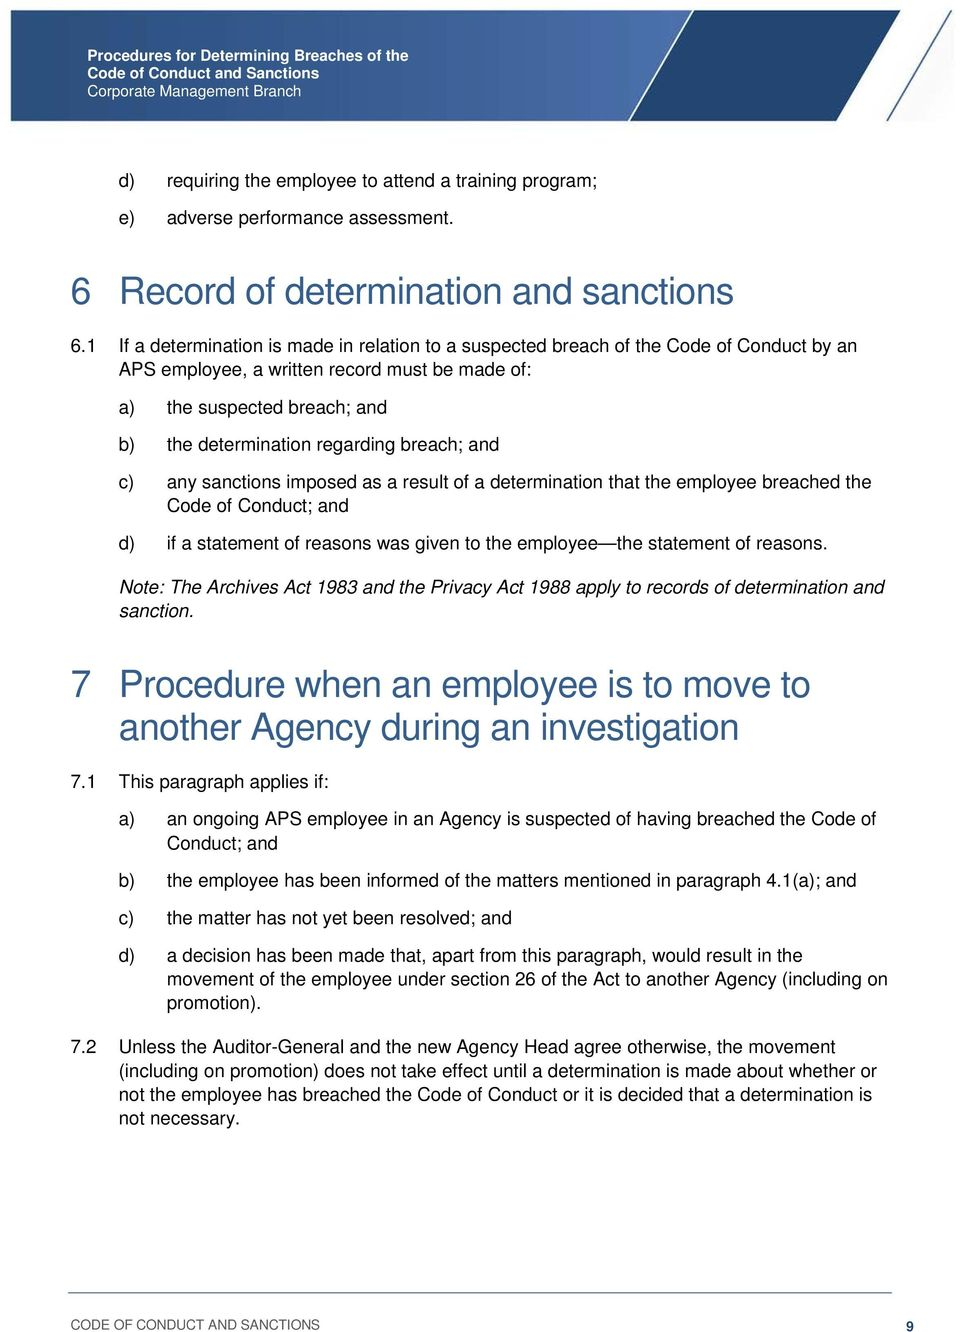 breach; and c) any sanctions imposed as a result of a determination that the employee breached the Code of Conduct; and d) if a statement of reasons was given to the employee the statement of reasons.